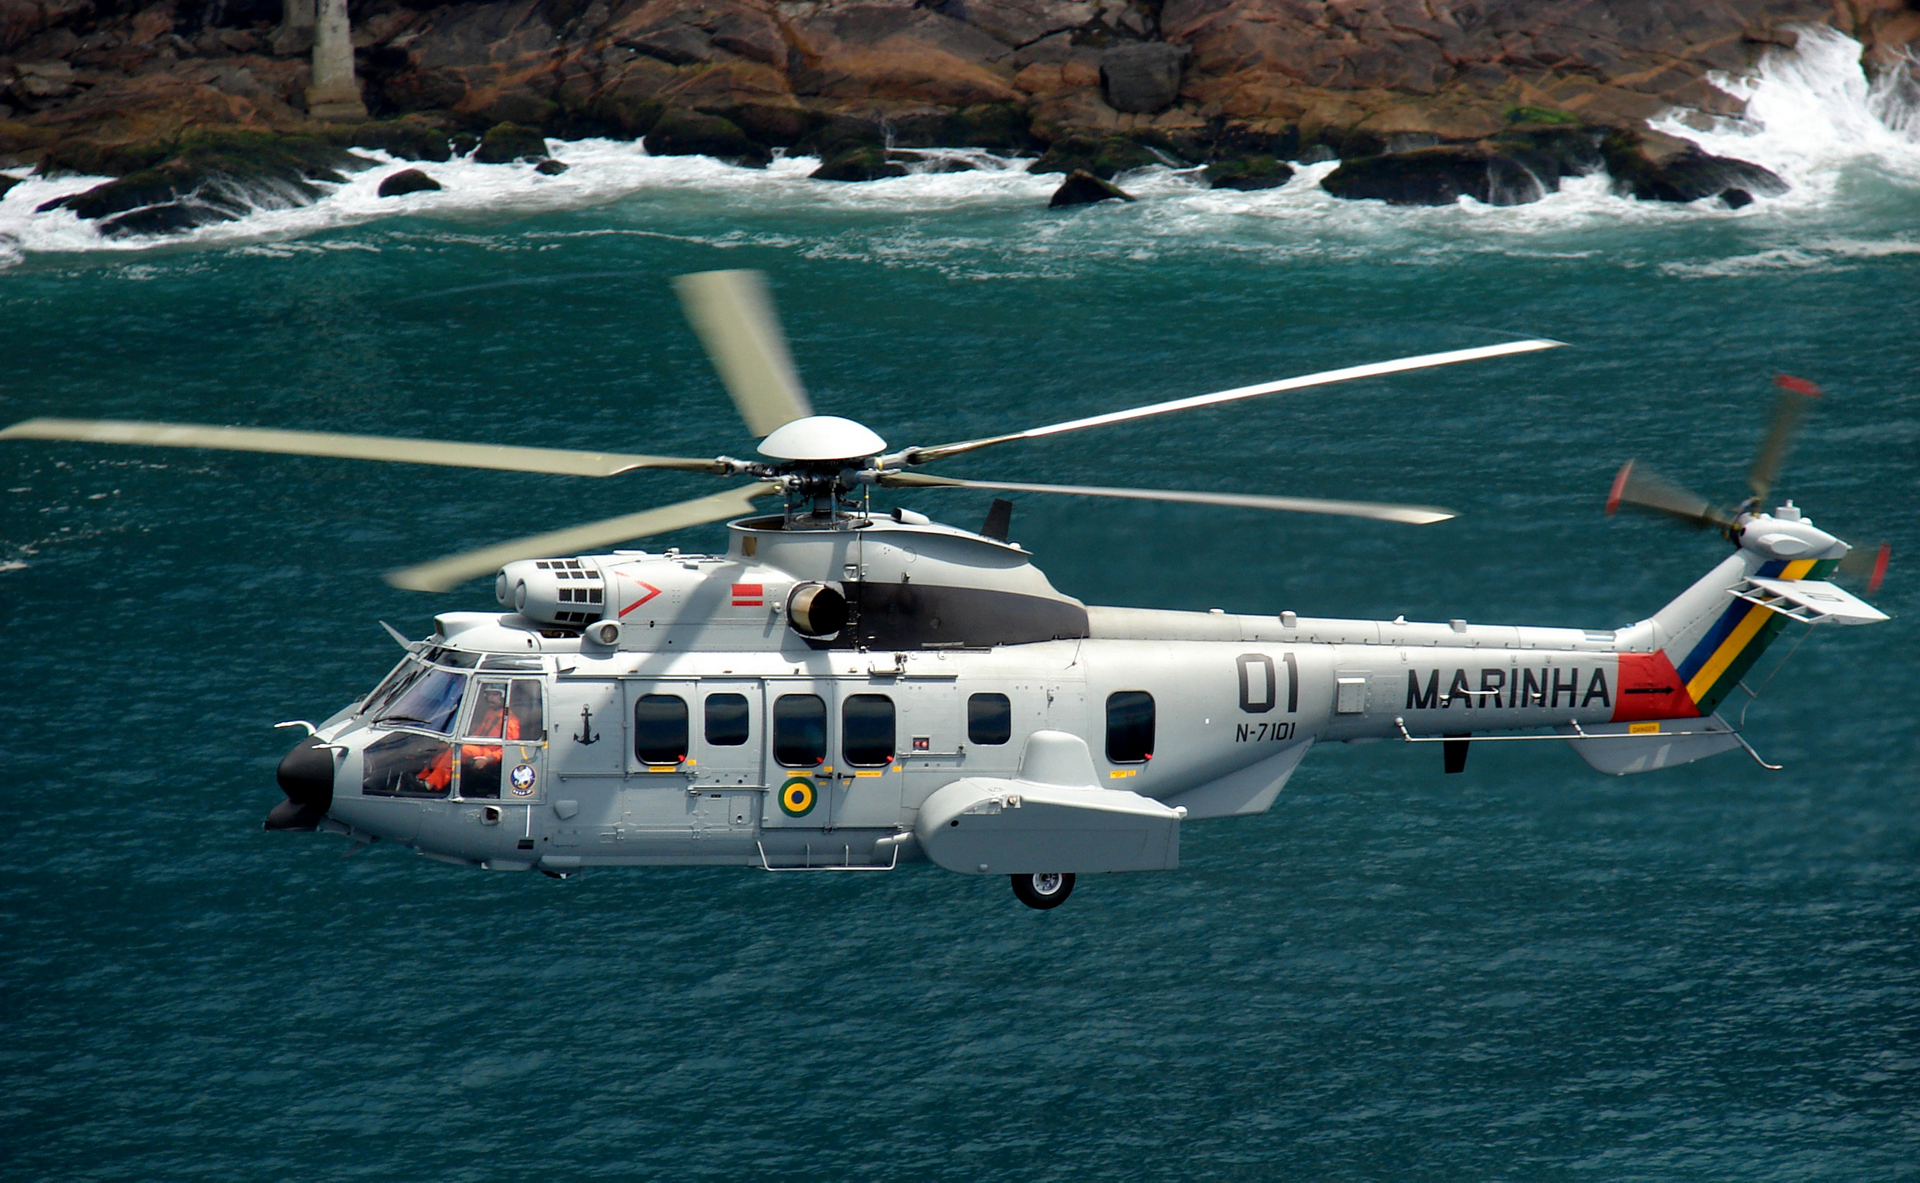 An H225M rotorcraft is showing flying over a coastal area.